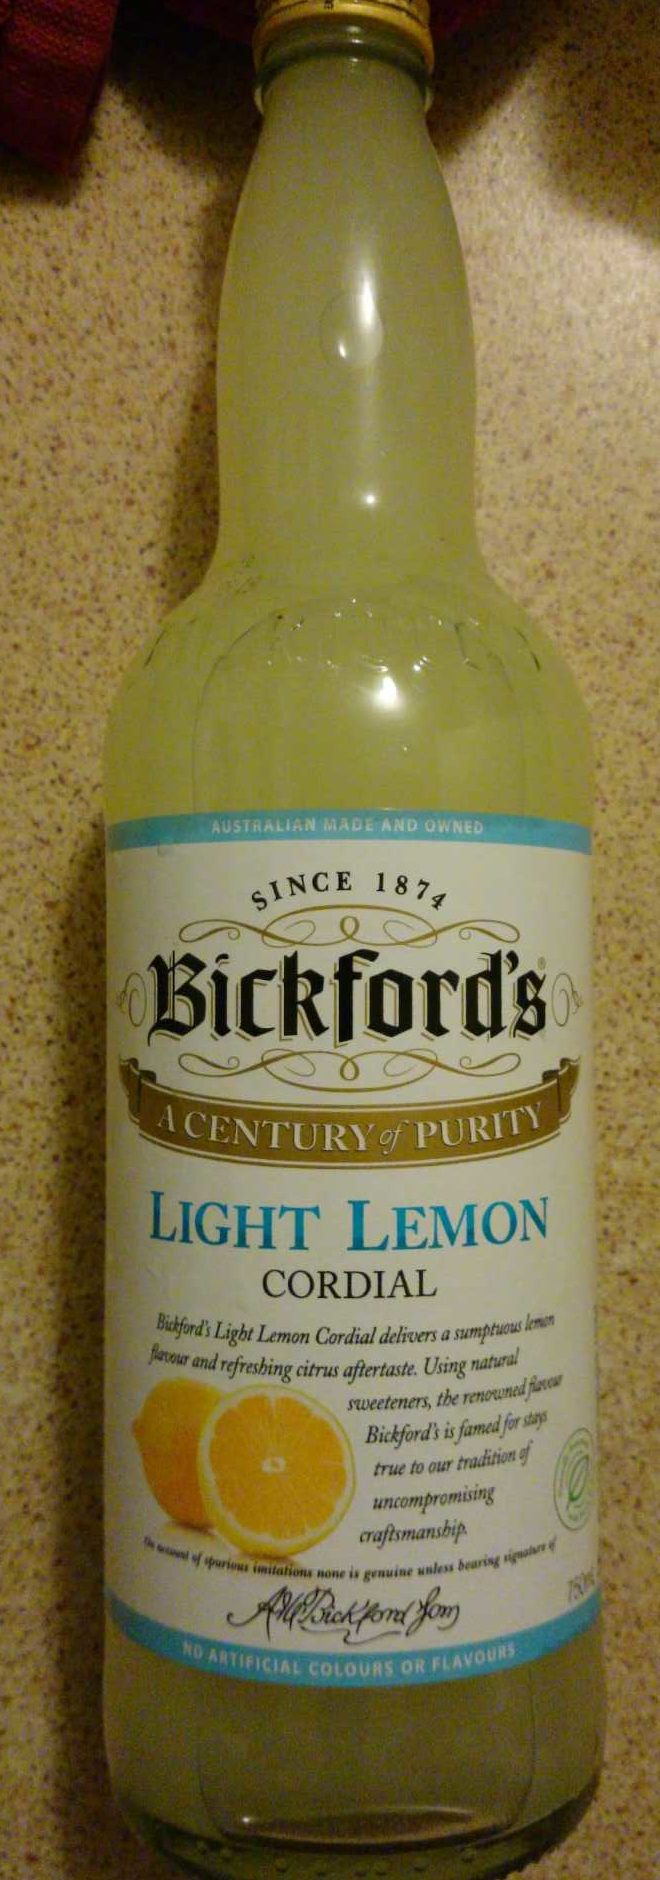 Bickfords Light Lemon Cordial - Product